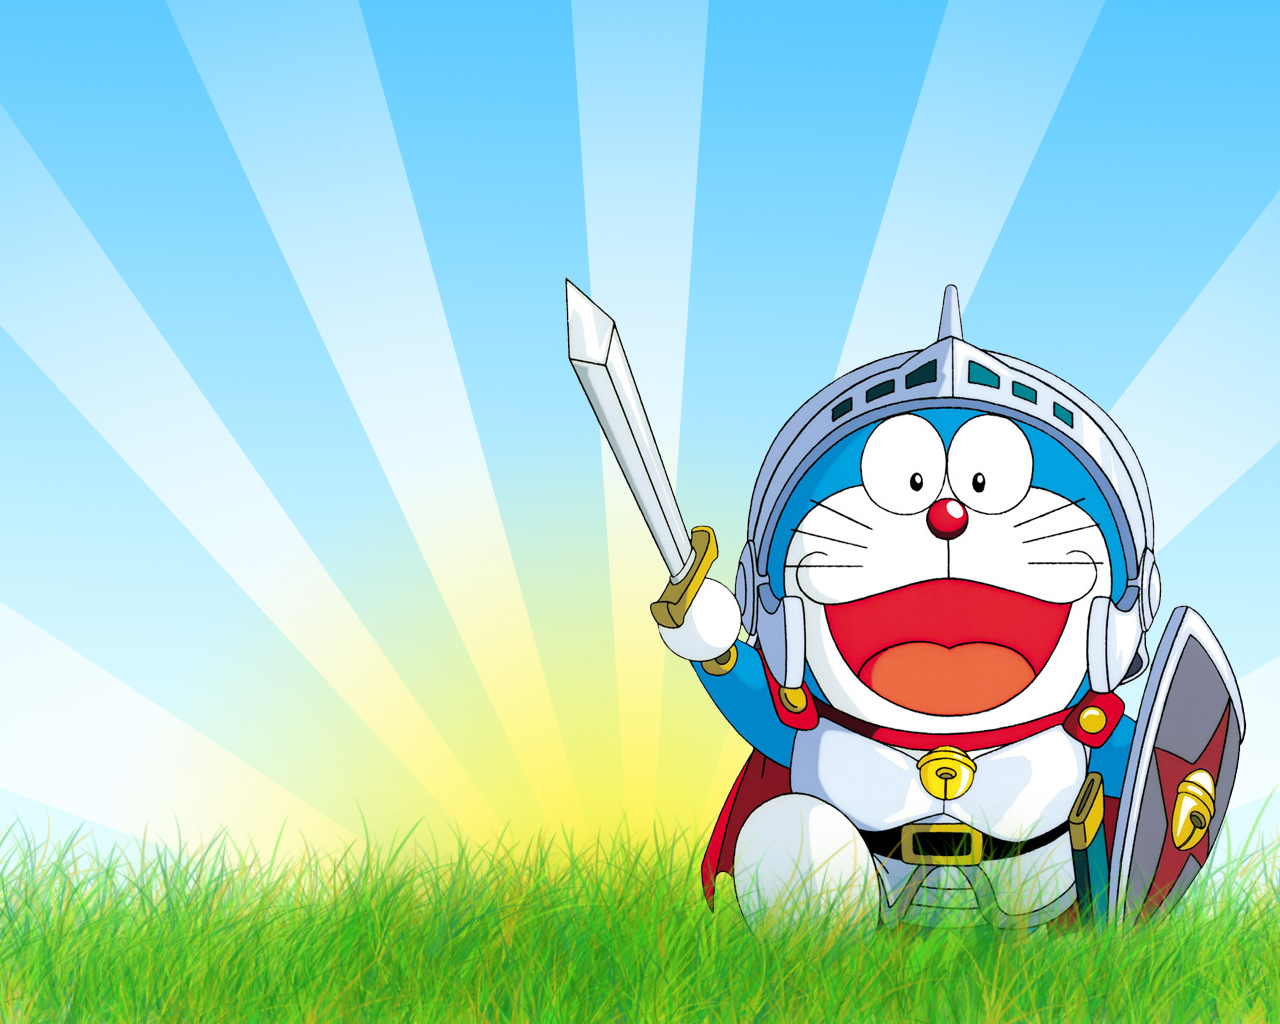 Minitokyo Doraemon Wallpapers HD